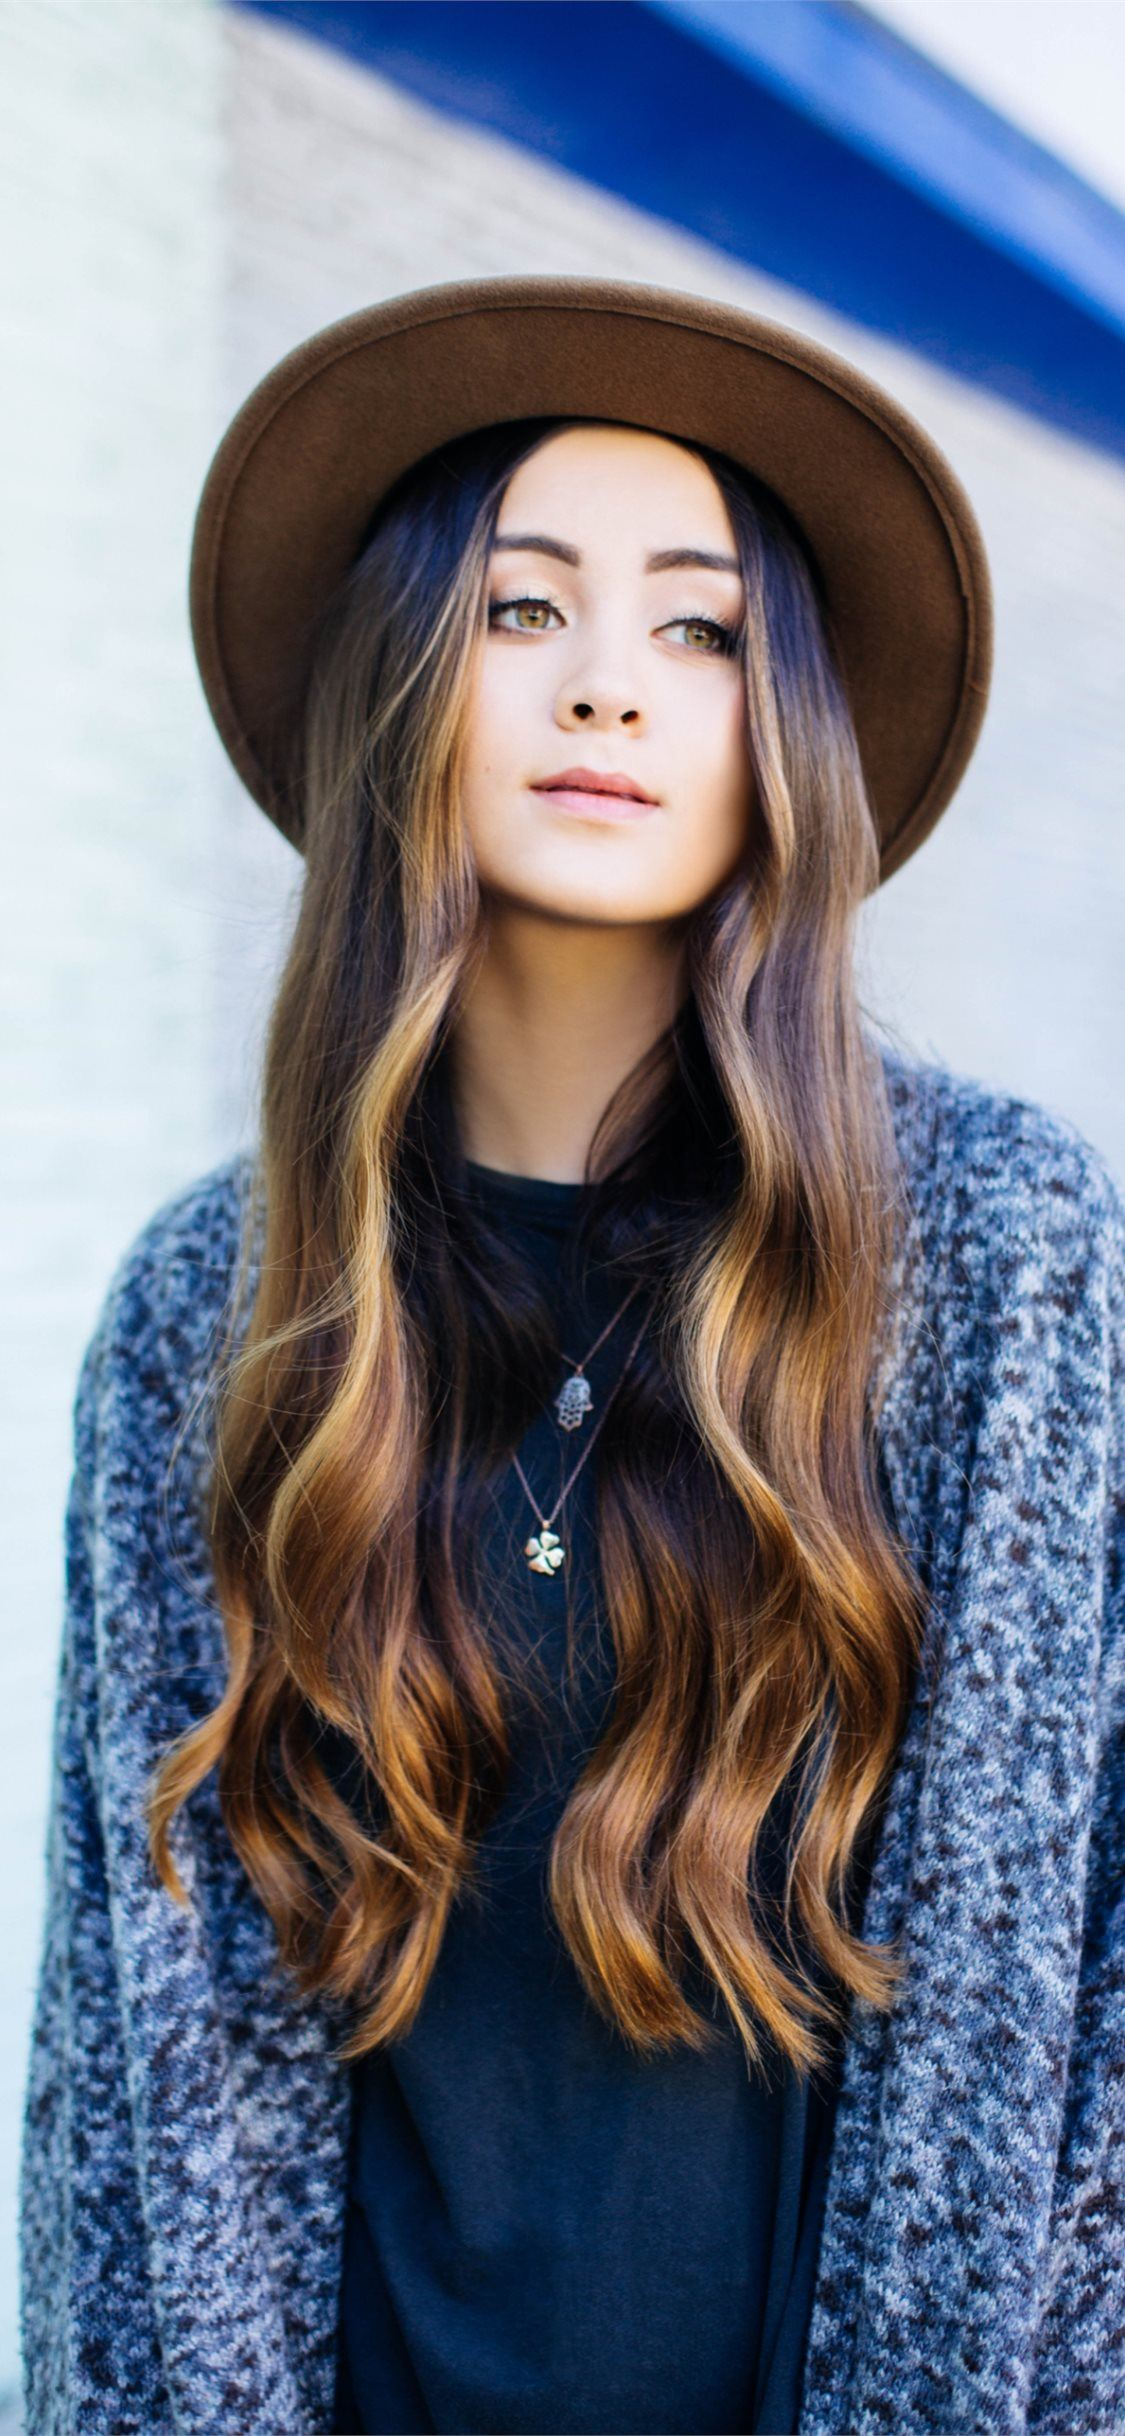 Best 59 Jasmine Thompson on Hip iPhone SE wallpaper